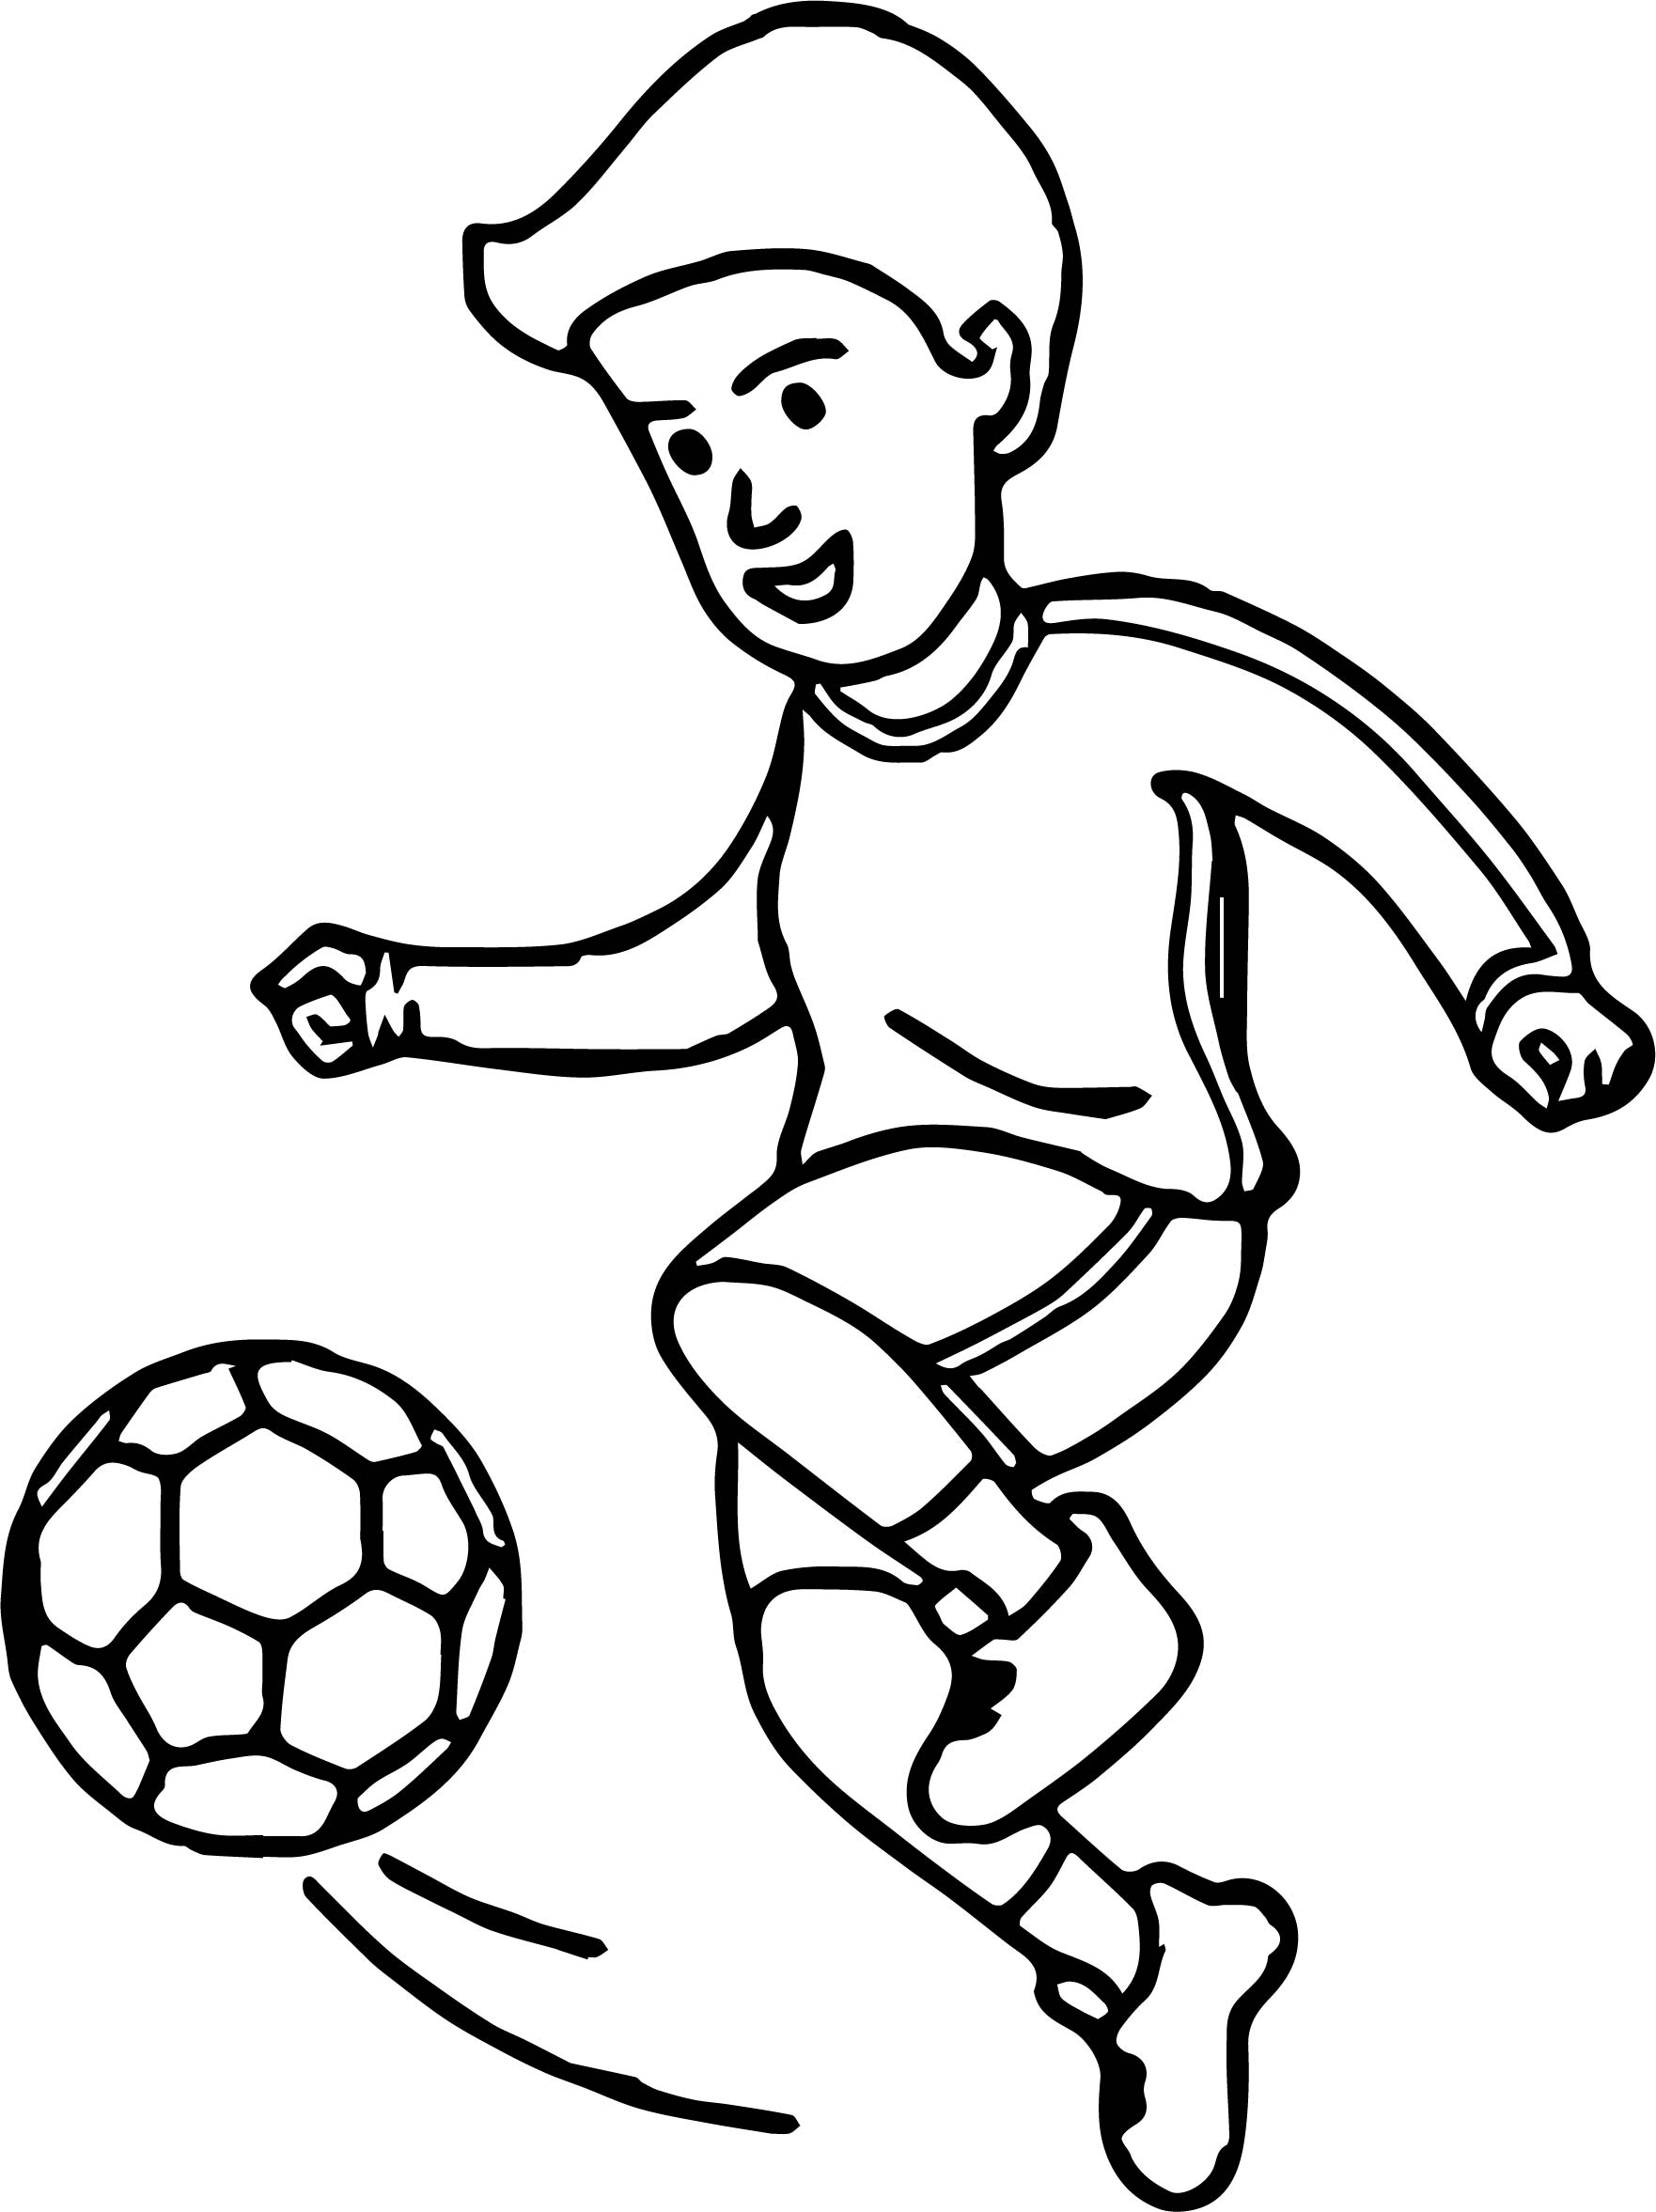 draw a football player how to draw a football player step by step draw football player a